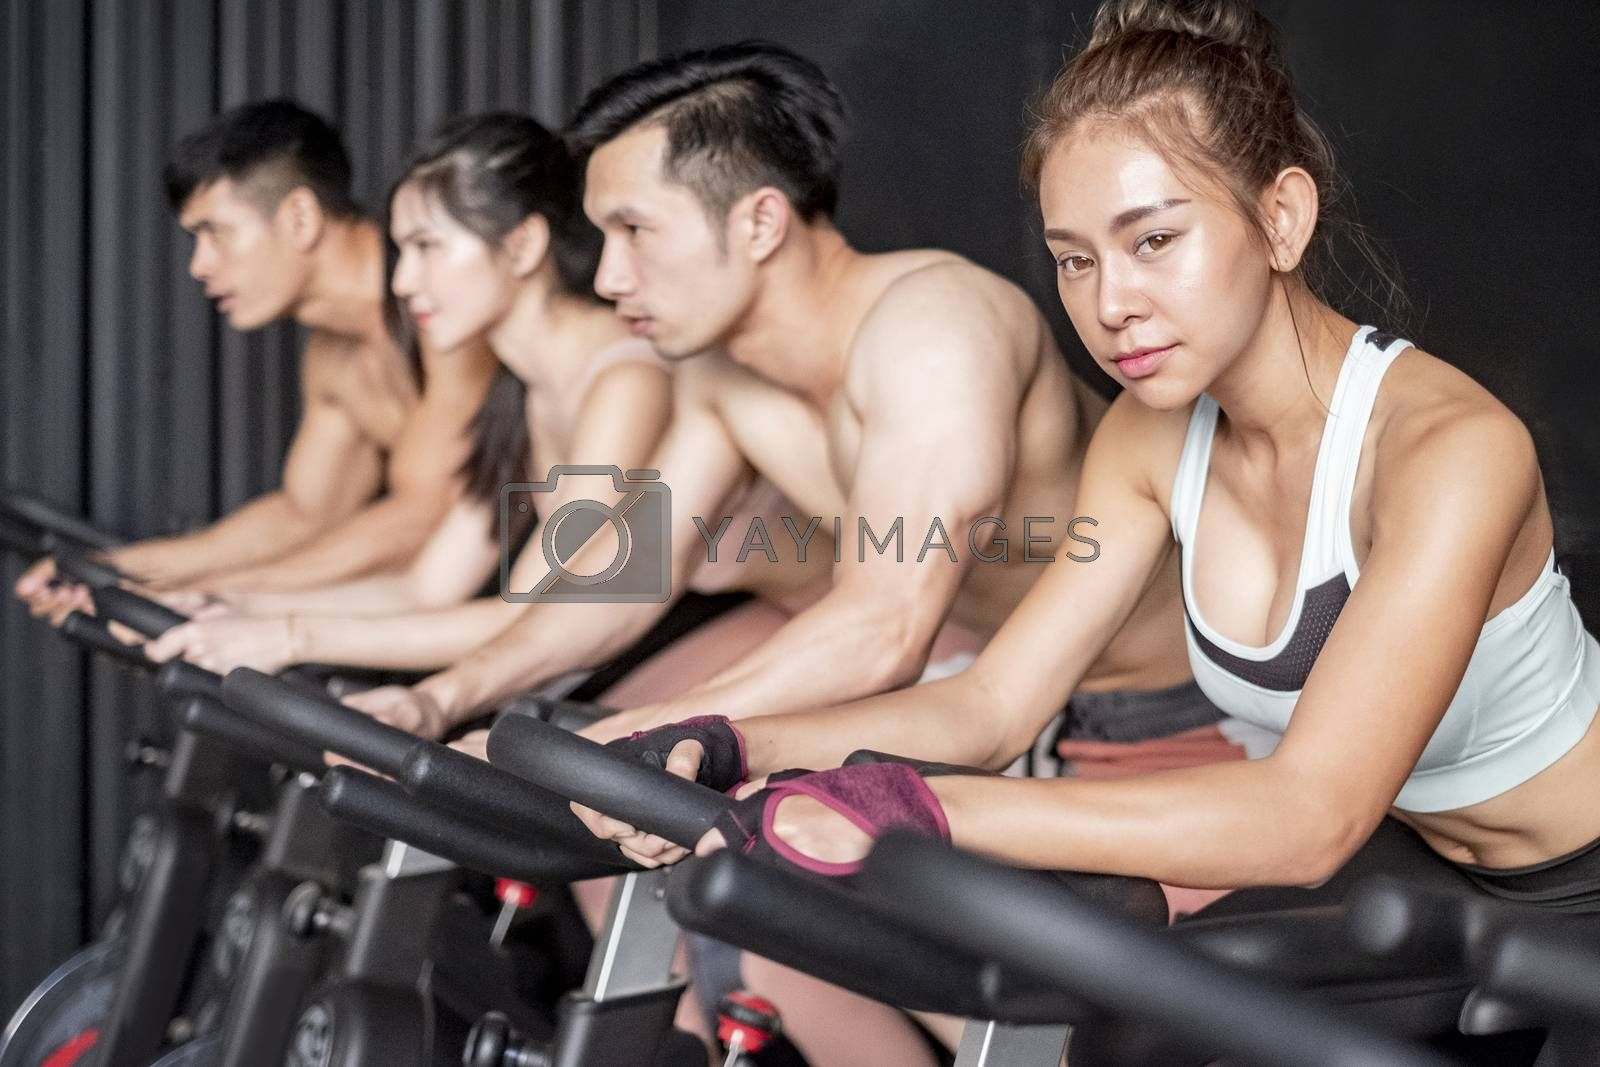 Young woman and friends on fitness bike in gym during workout